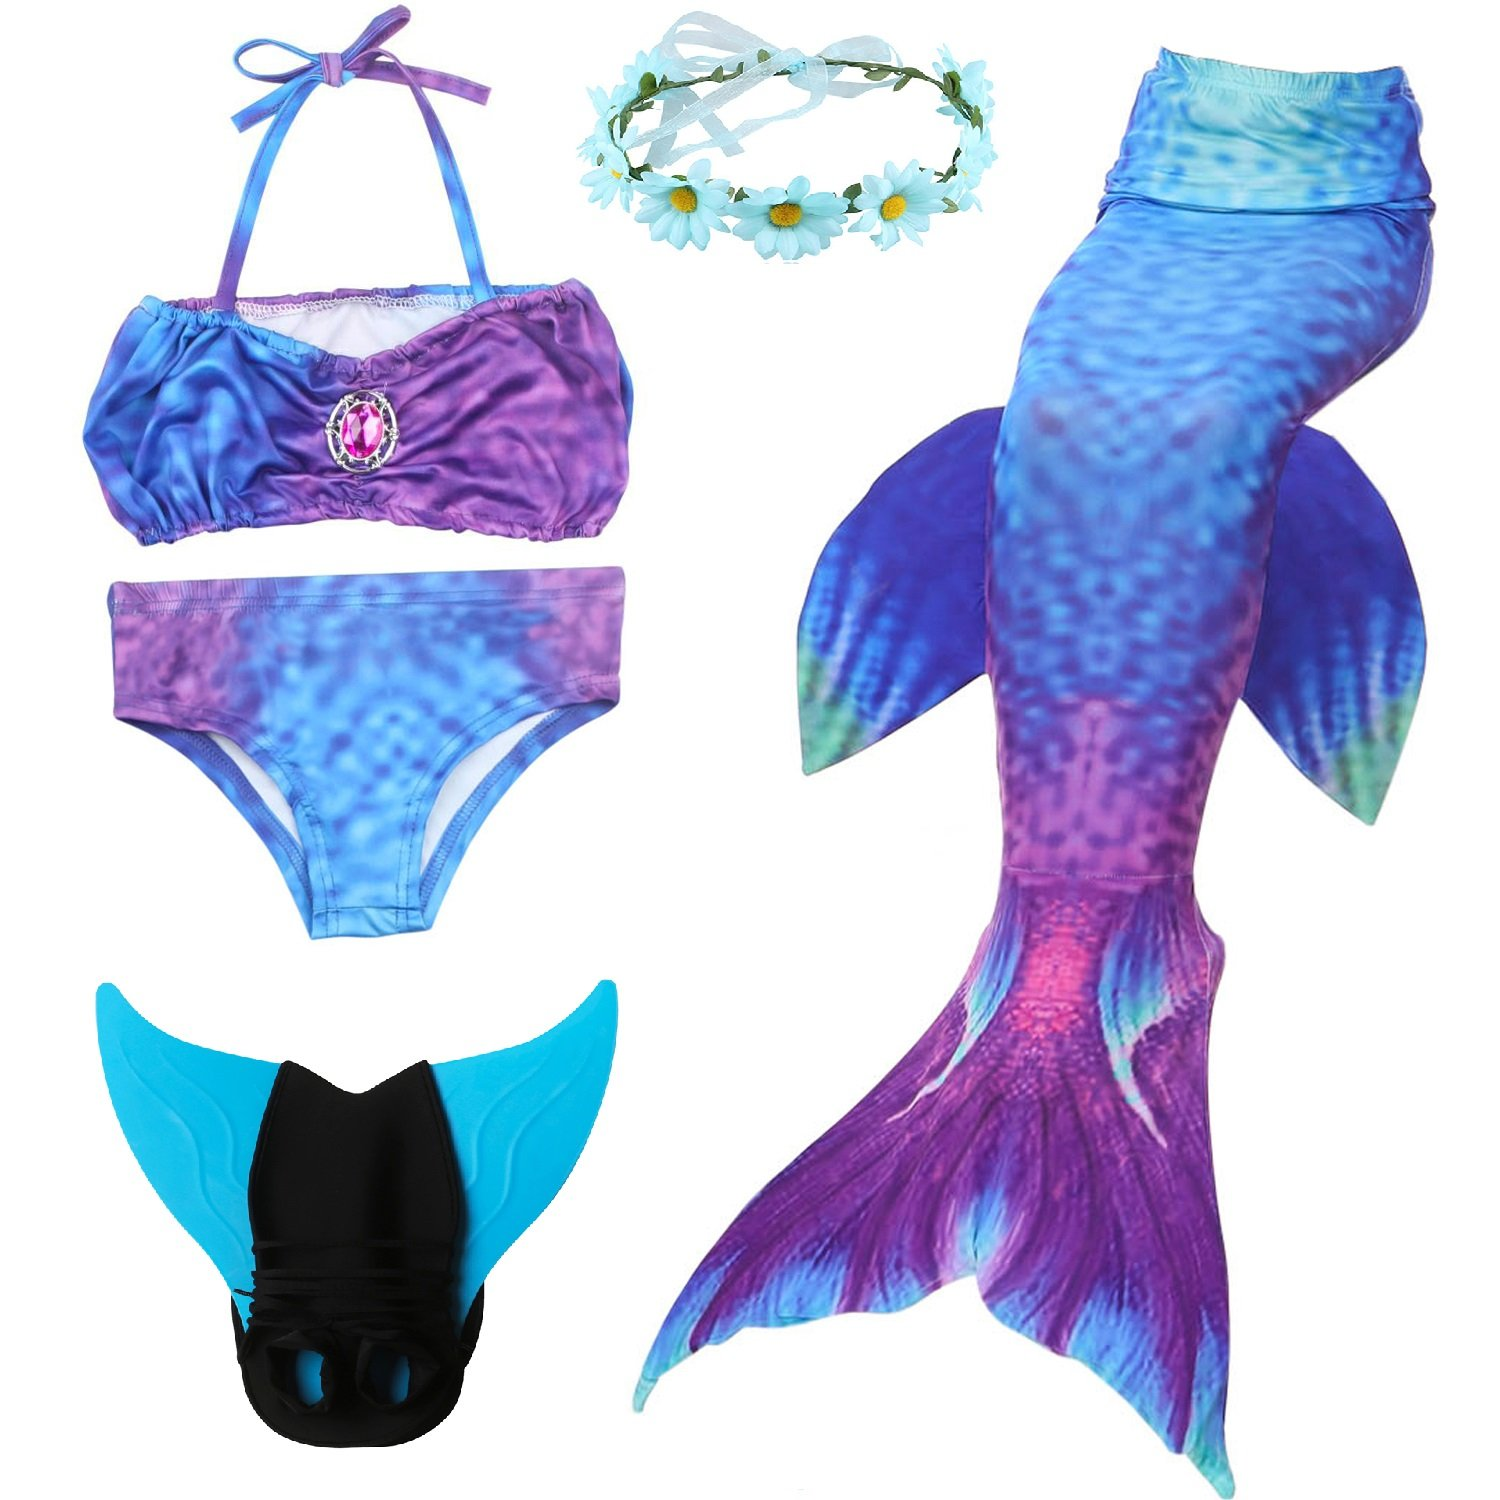 5 Piece Mermaid Tail Swimsuit with Removable Fin and Included Monofin and Flower Garland Headband, Wet and Dry Outfit for Children and Teens (150(10-13Y), Bohemia)